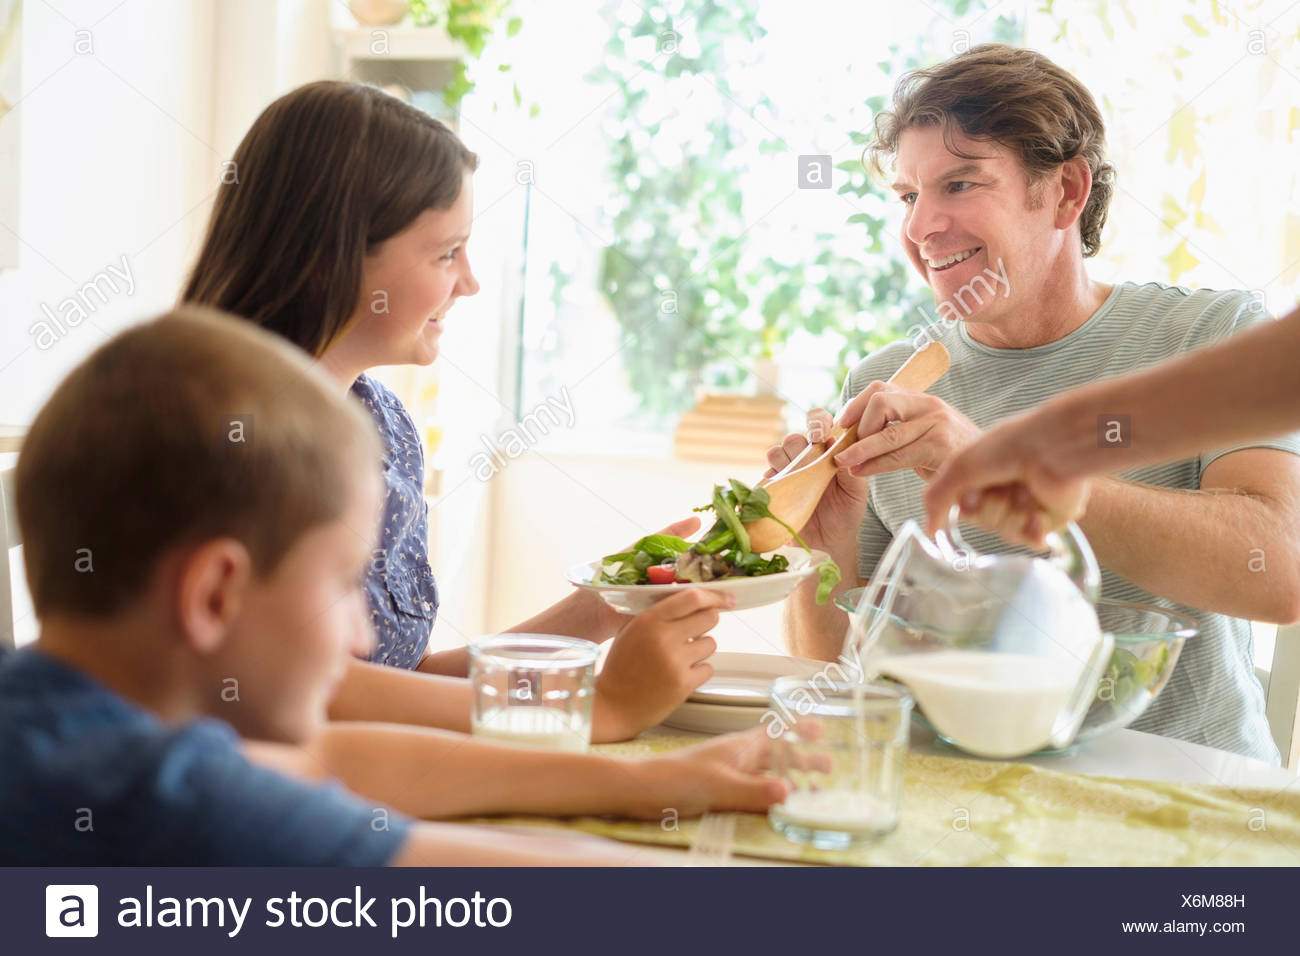 Children (8-9, 10-11) eating salad with parents - Stock Image